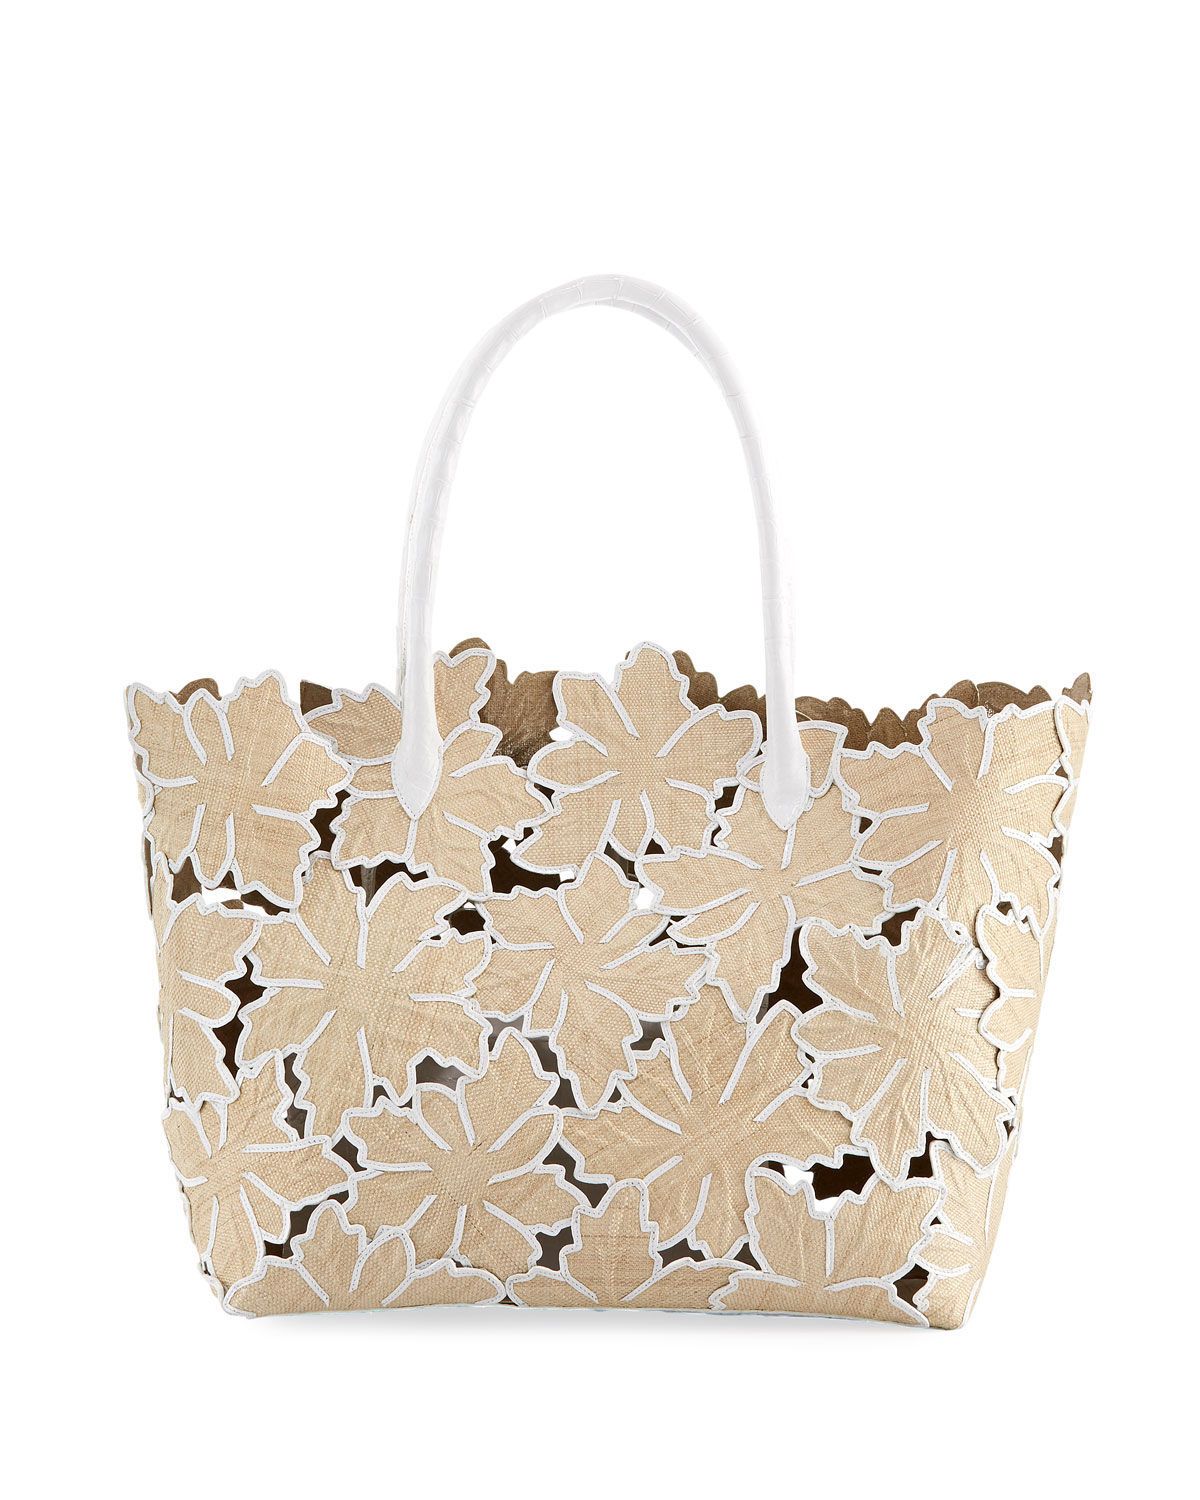 Medium Floral Straw Tote Bag